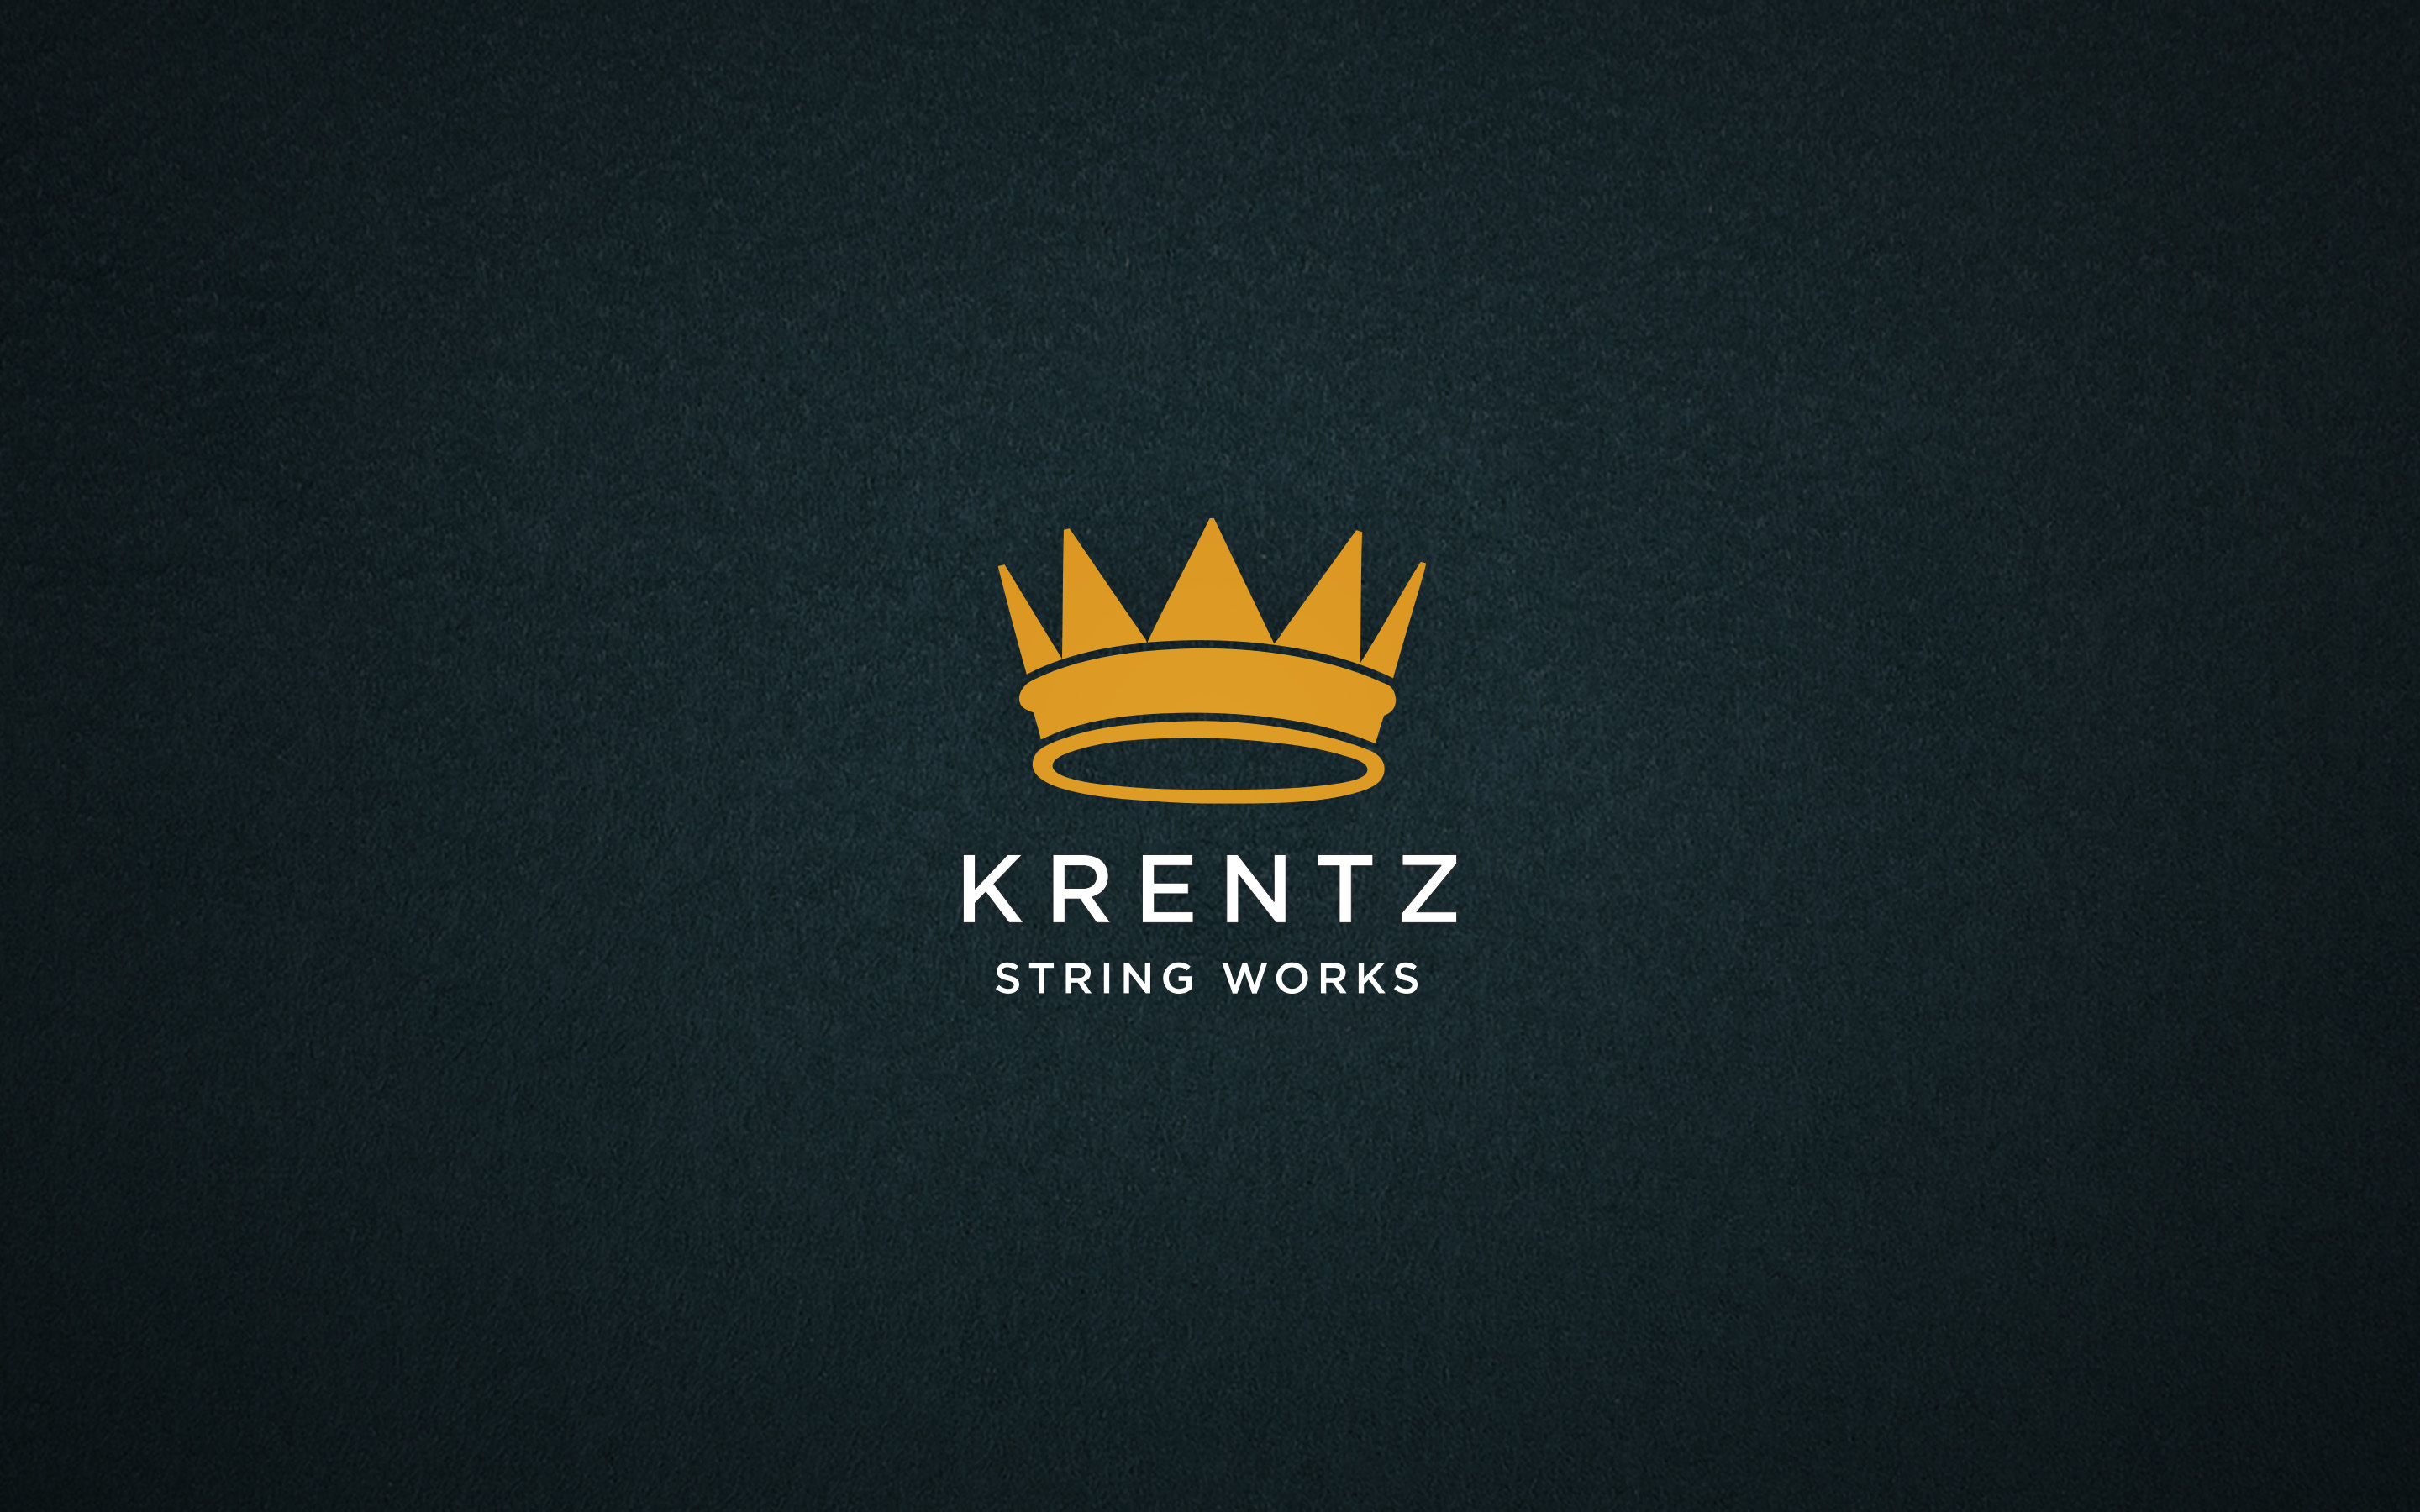 Krentz String Works Brand